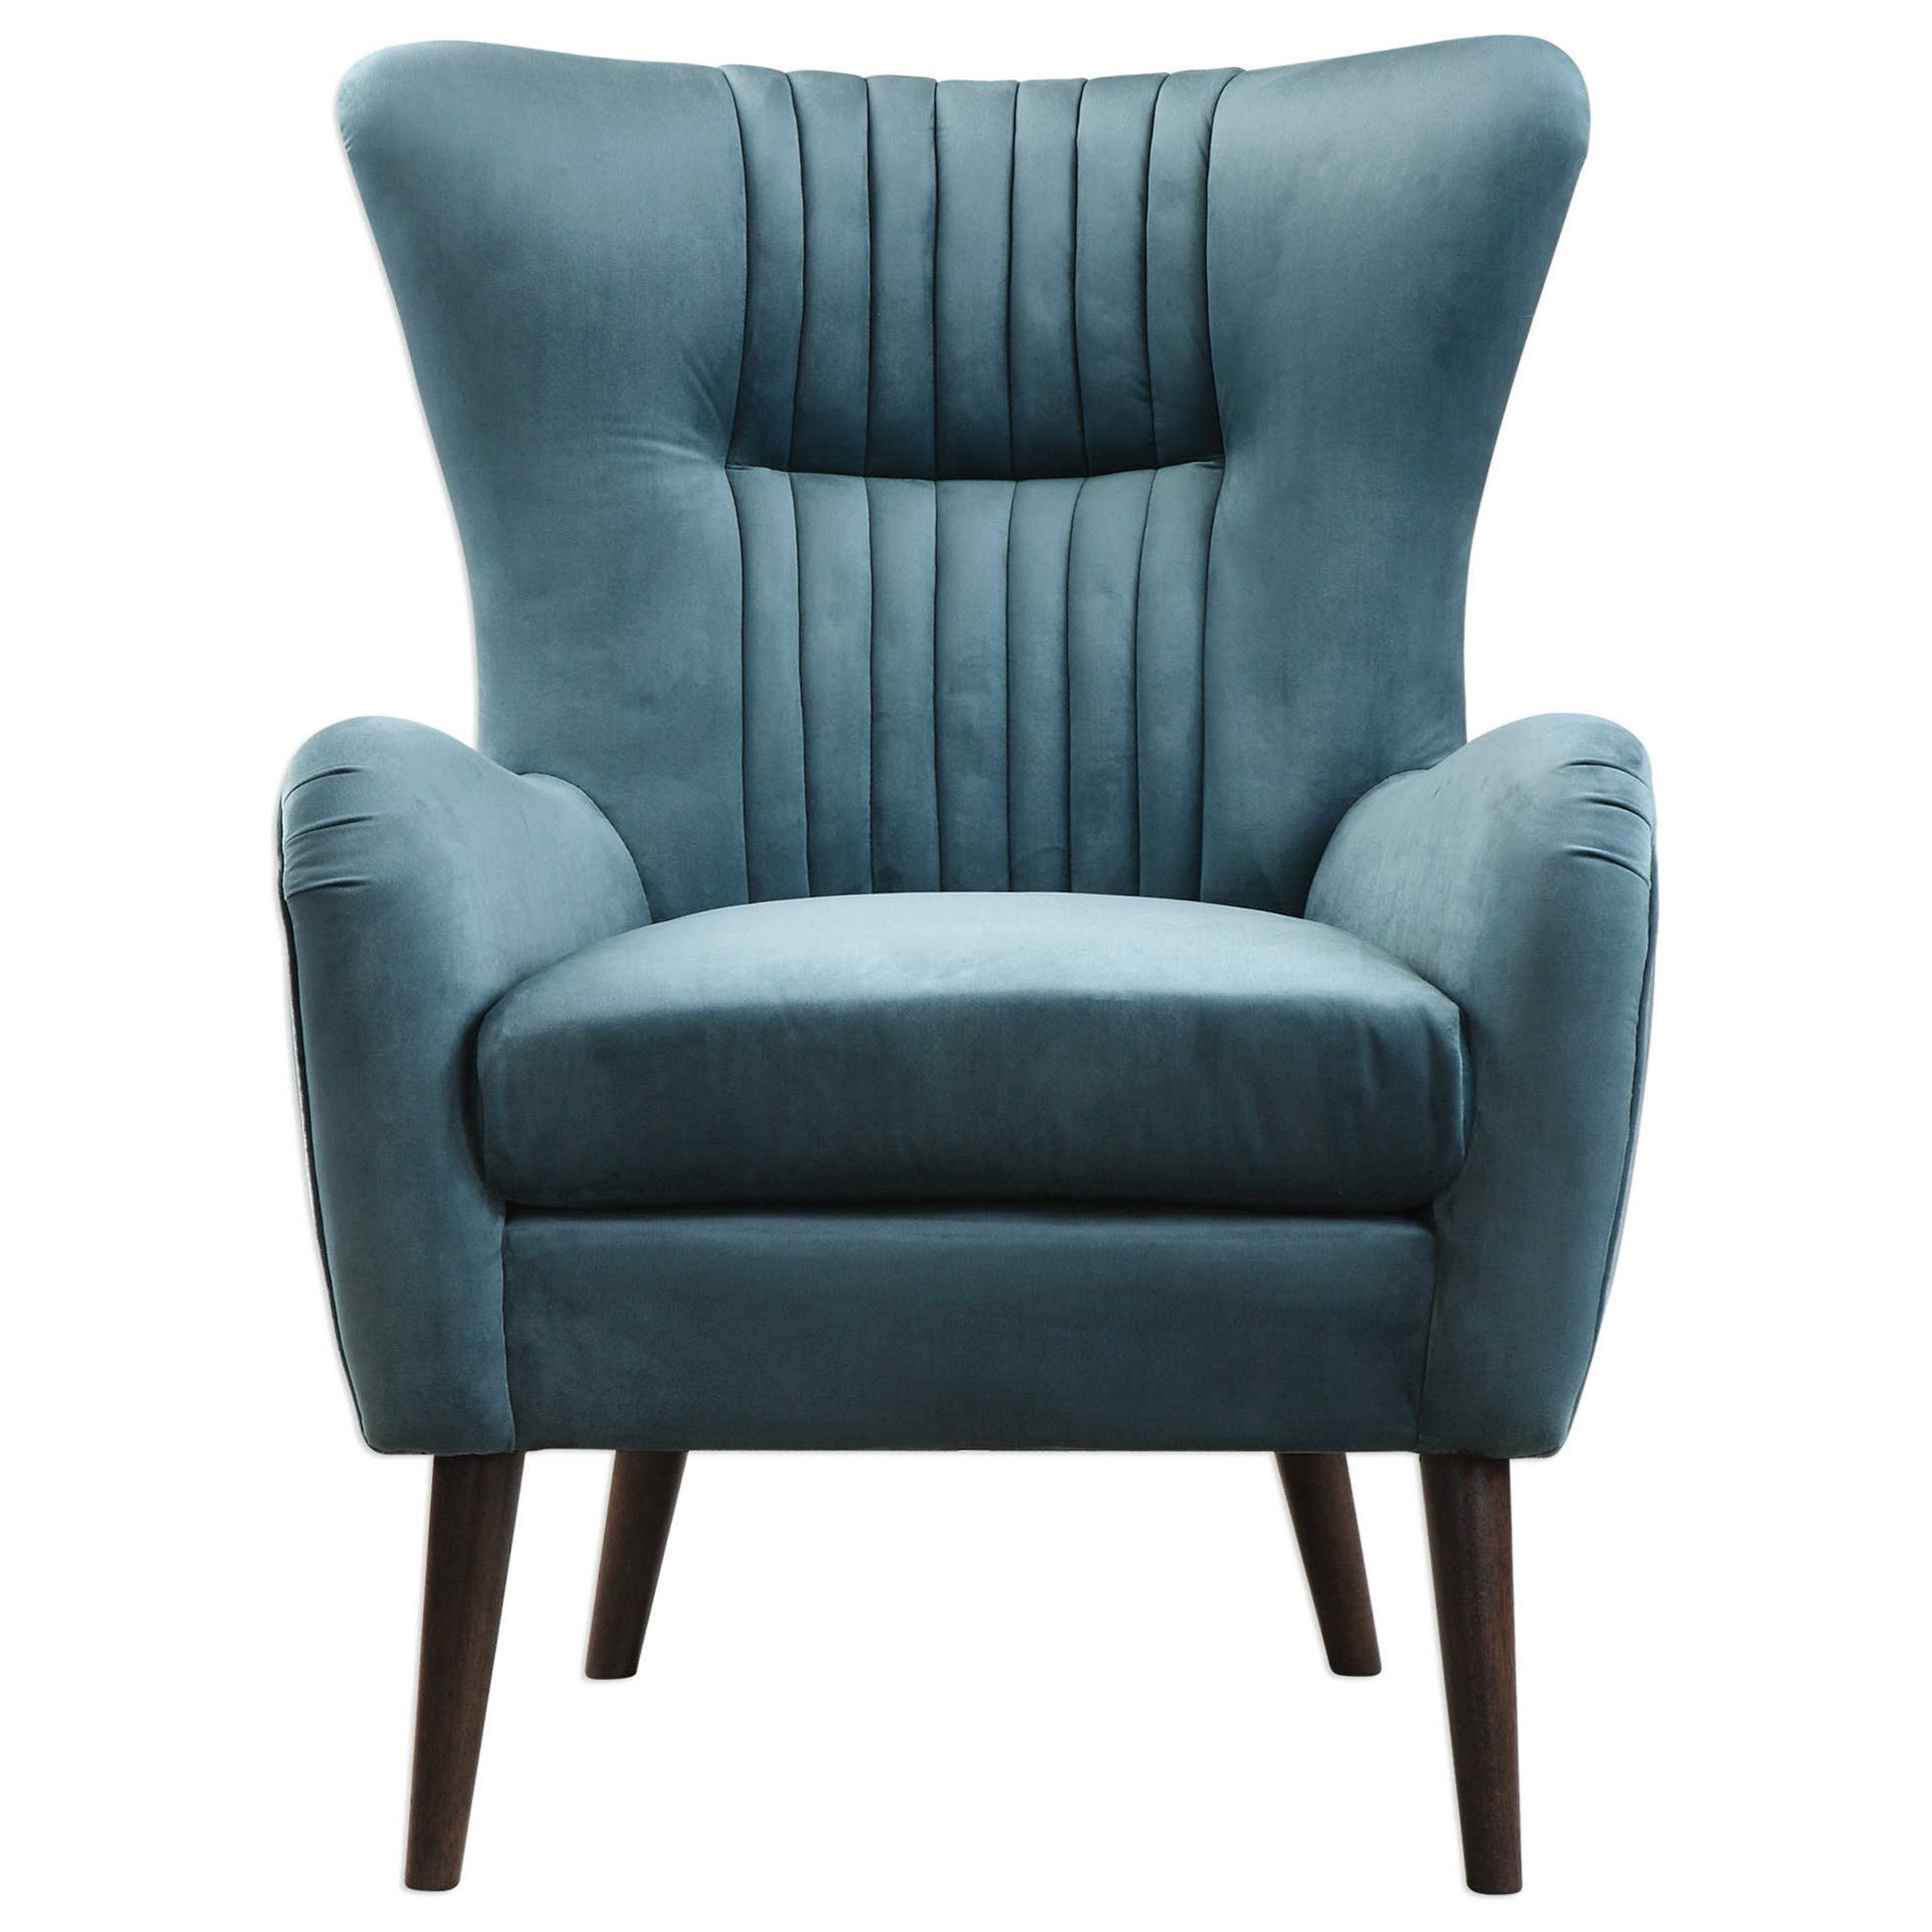 Accent Furniture - Accent Chairs Dax Mid-Century Accent Chair by Uttermost at Furniture and ApplianceMart